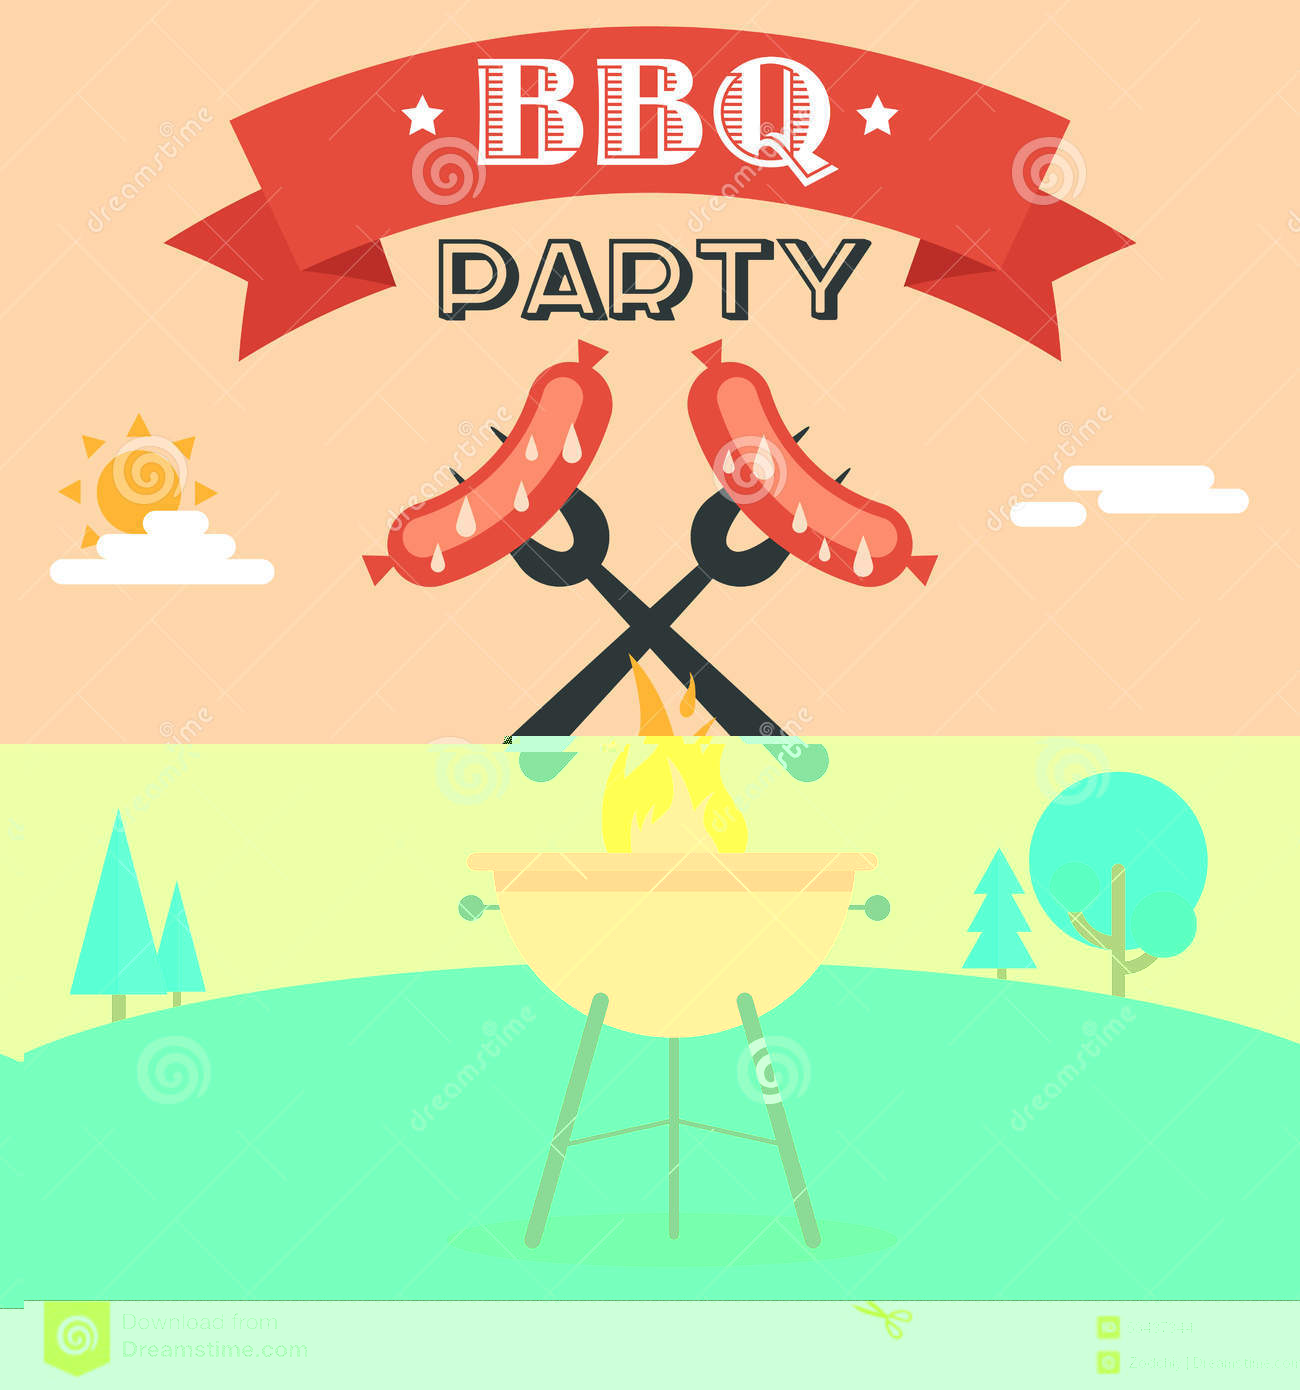 Barbecue clipart flyer. Bbq party template ianswer